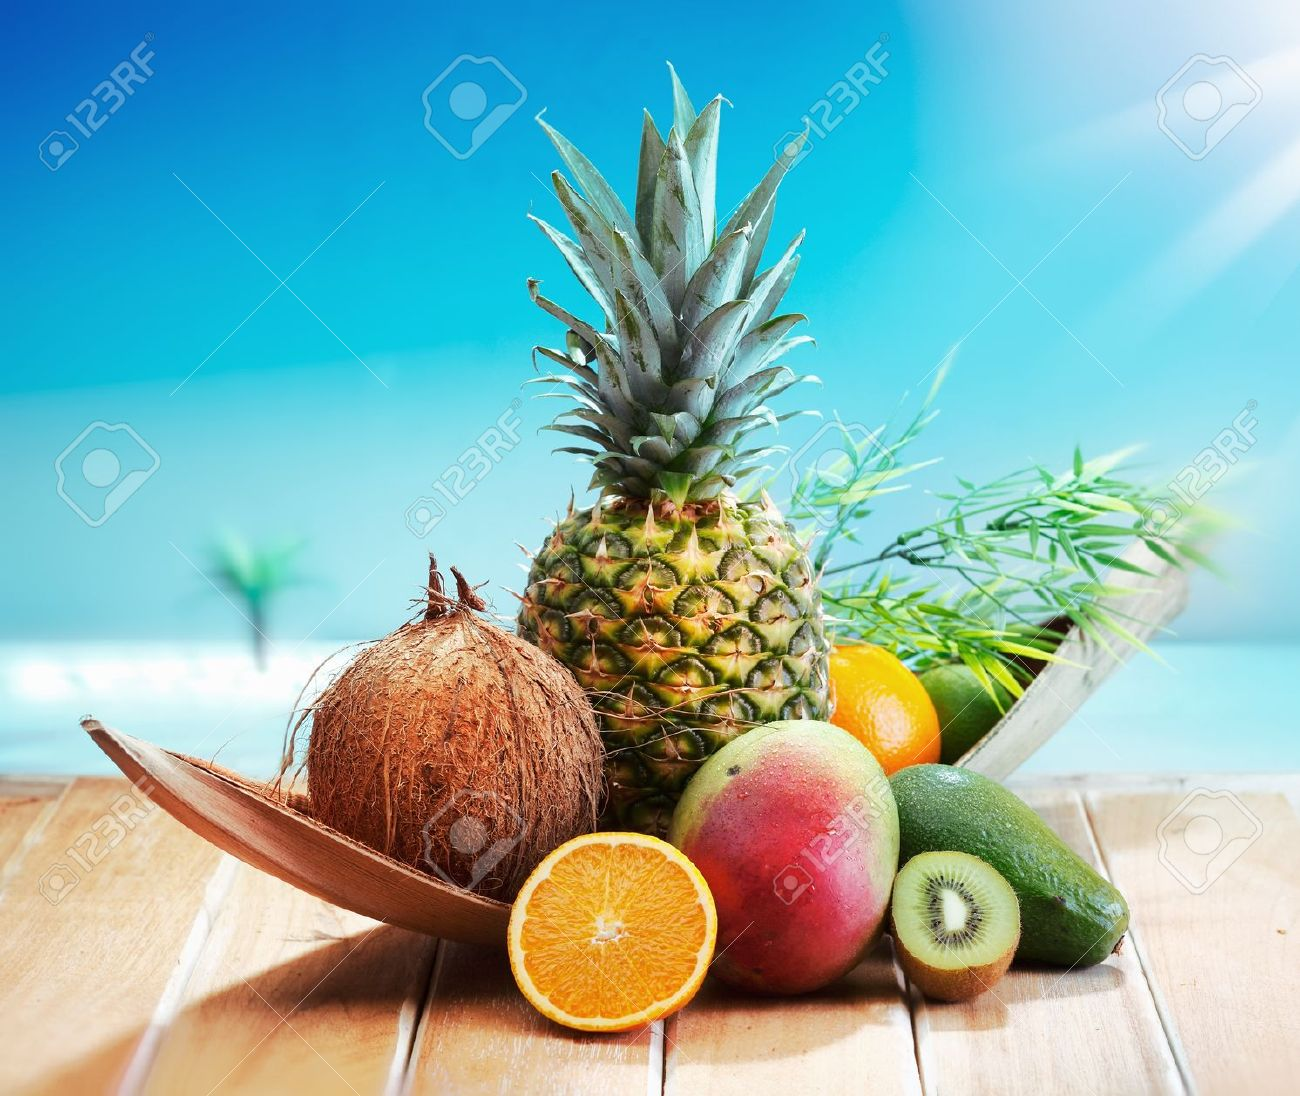 Fresh Fruits on the beach at a deck in front of an island with a palm. Assorted tropical fruits, orange,Ananas or pineapple, lime,mango and avocado. - 13237748